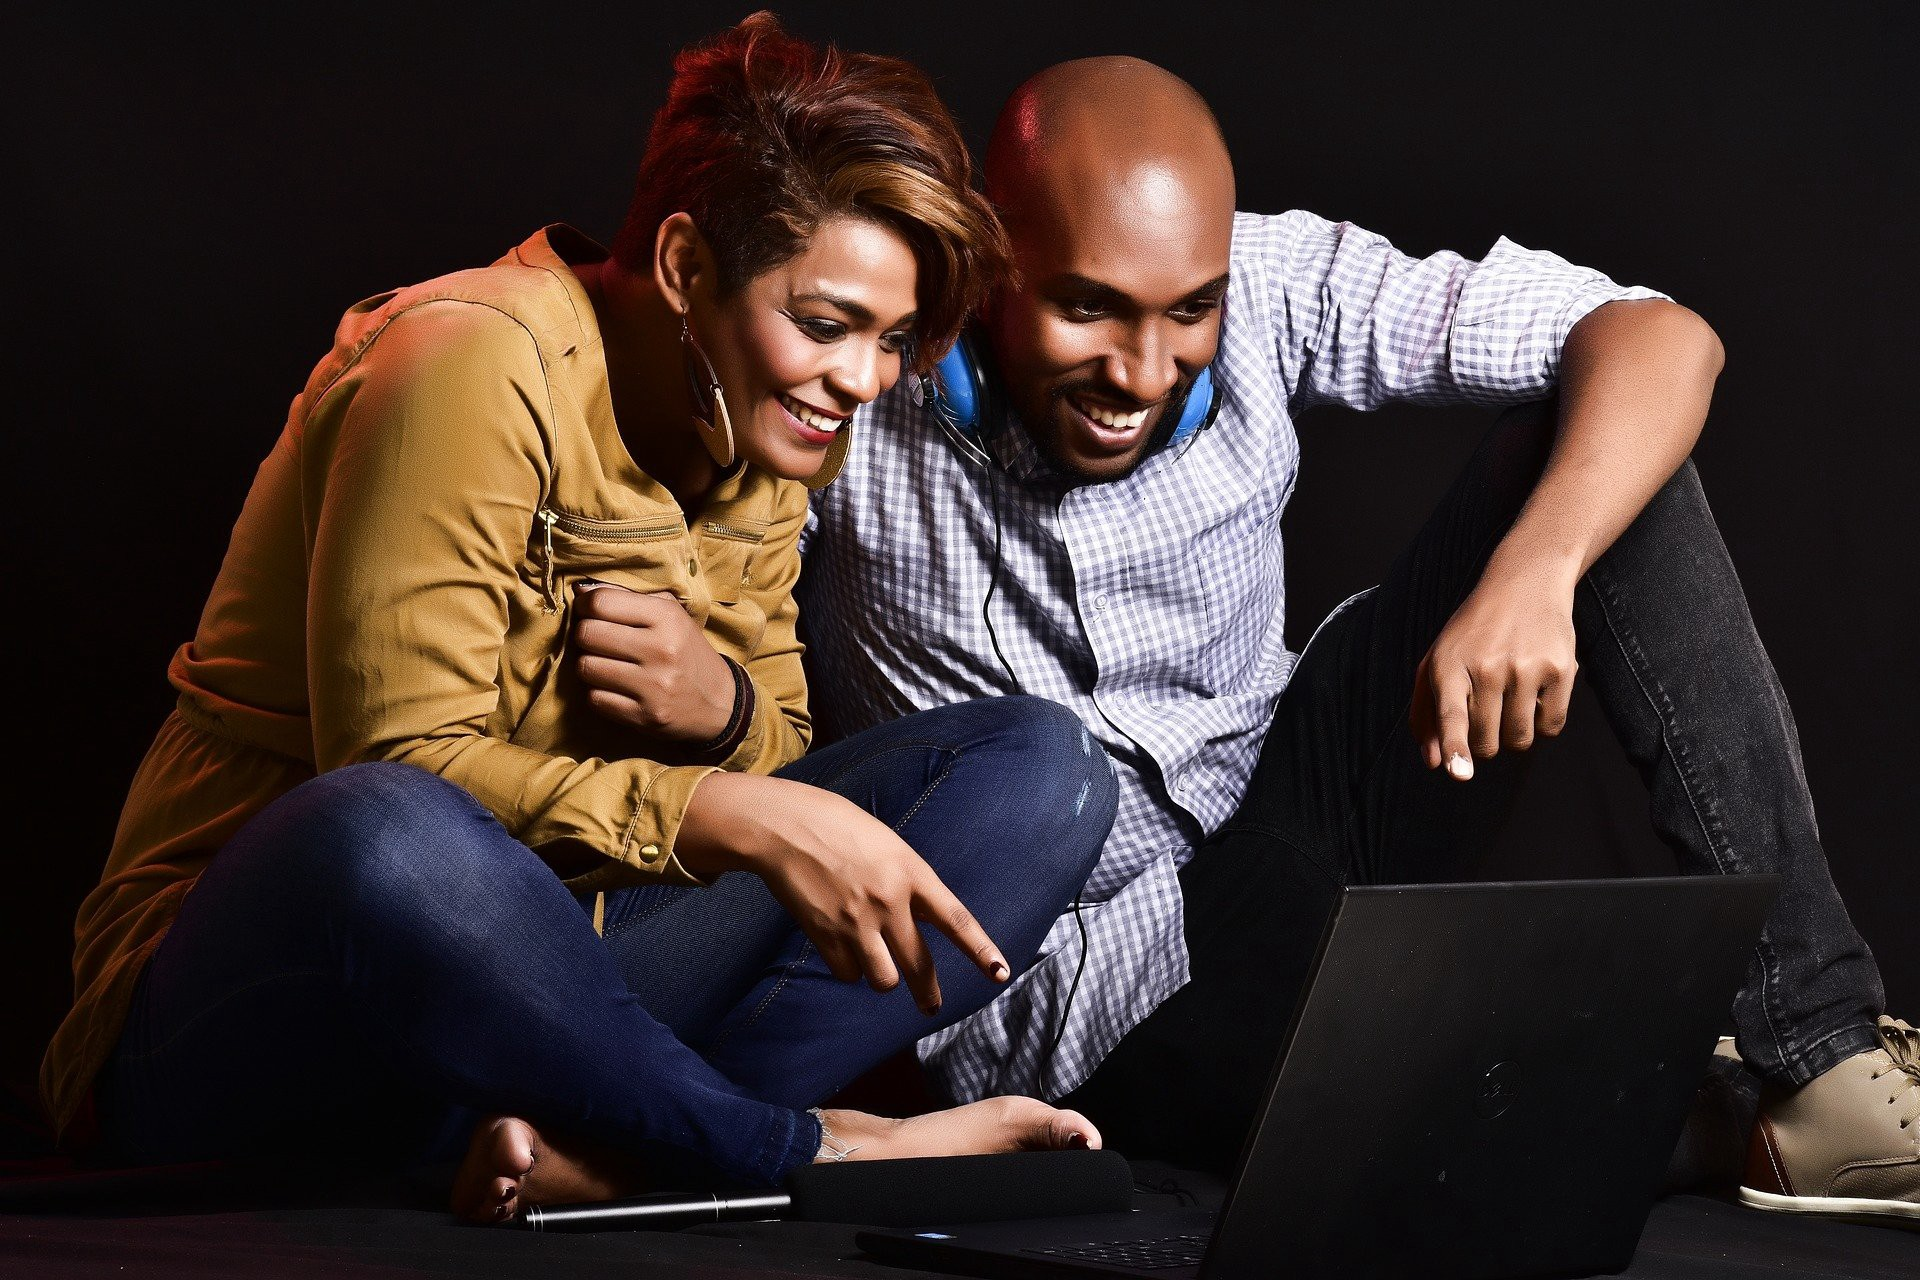 Couple hunched over a computer and laughing at something we can't see